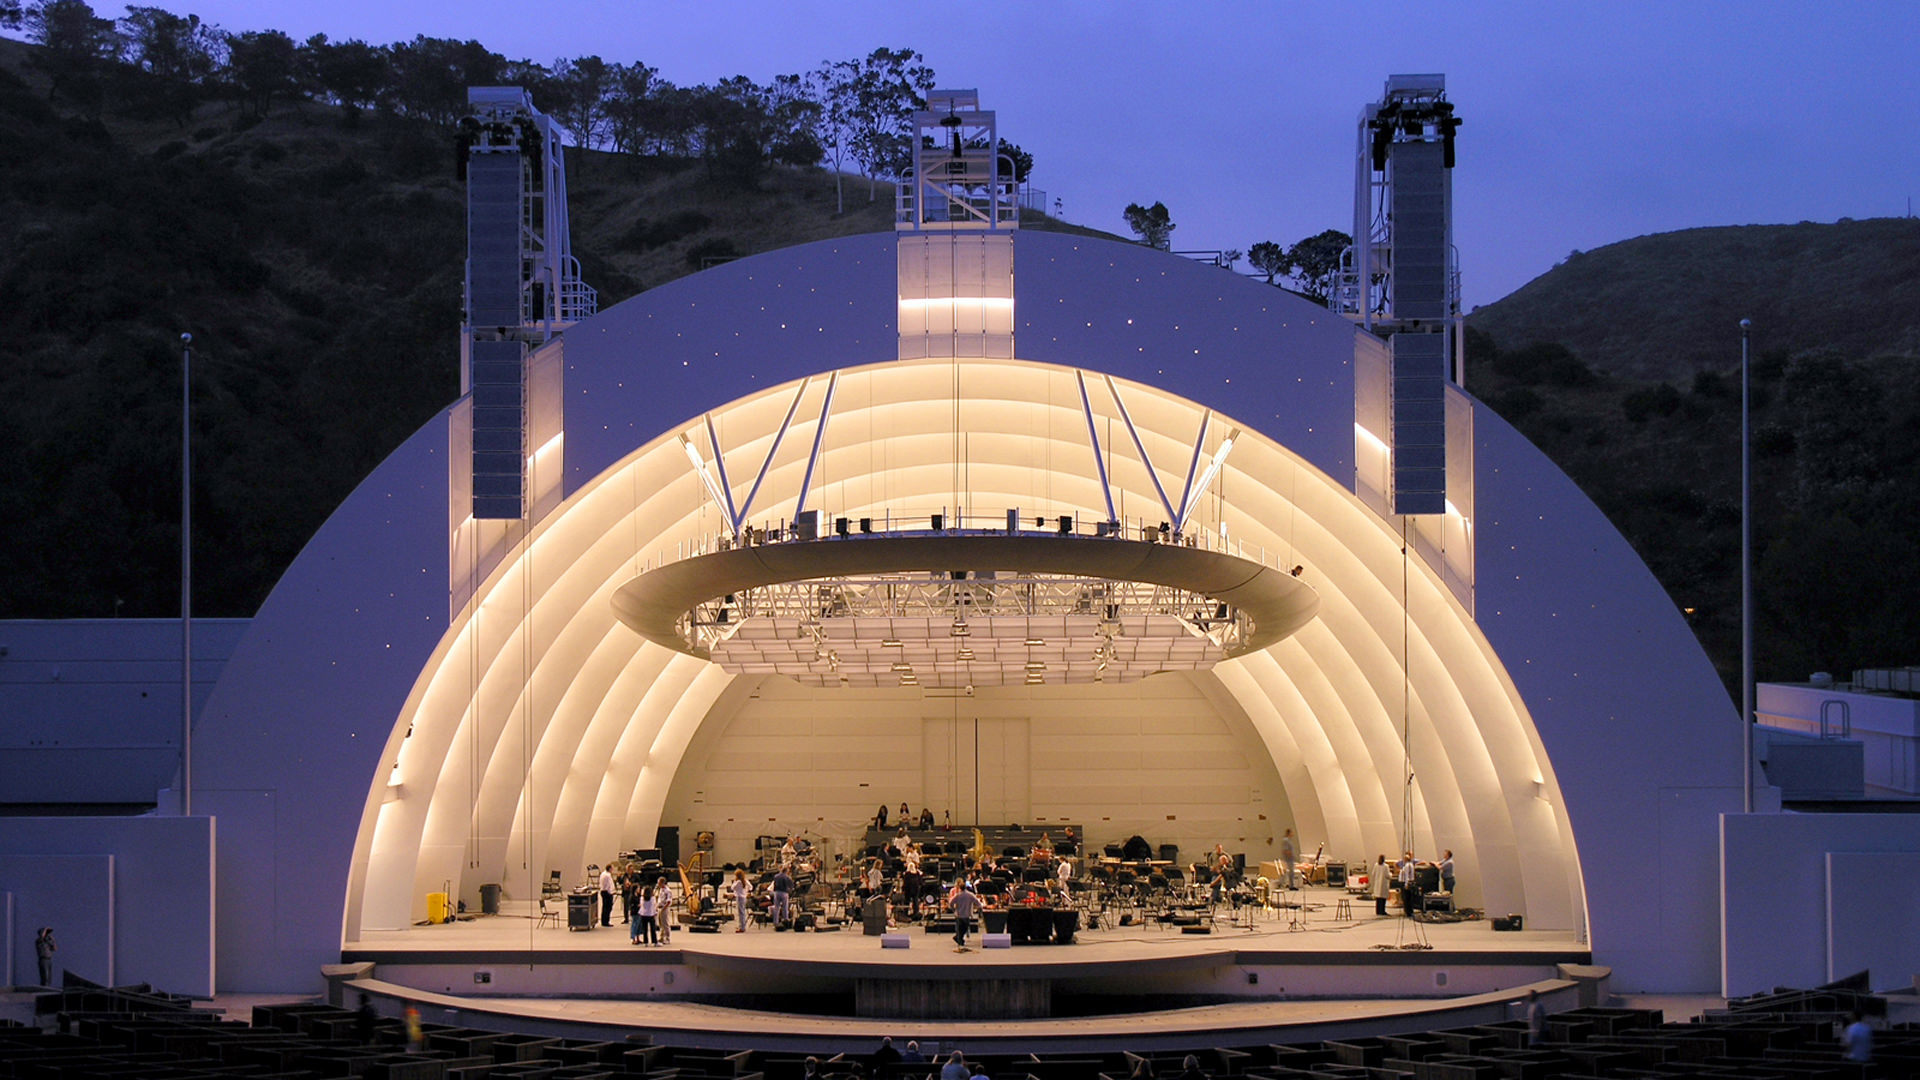 a semicircular stage dome like structure with orchestra on stage